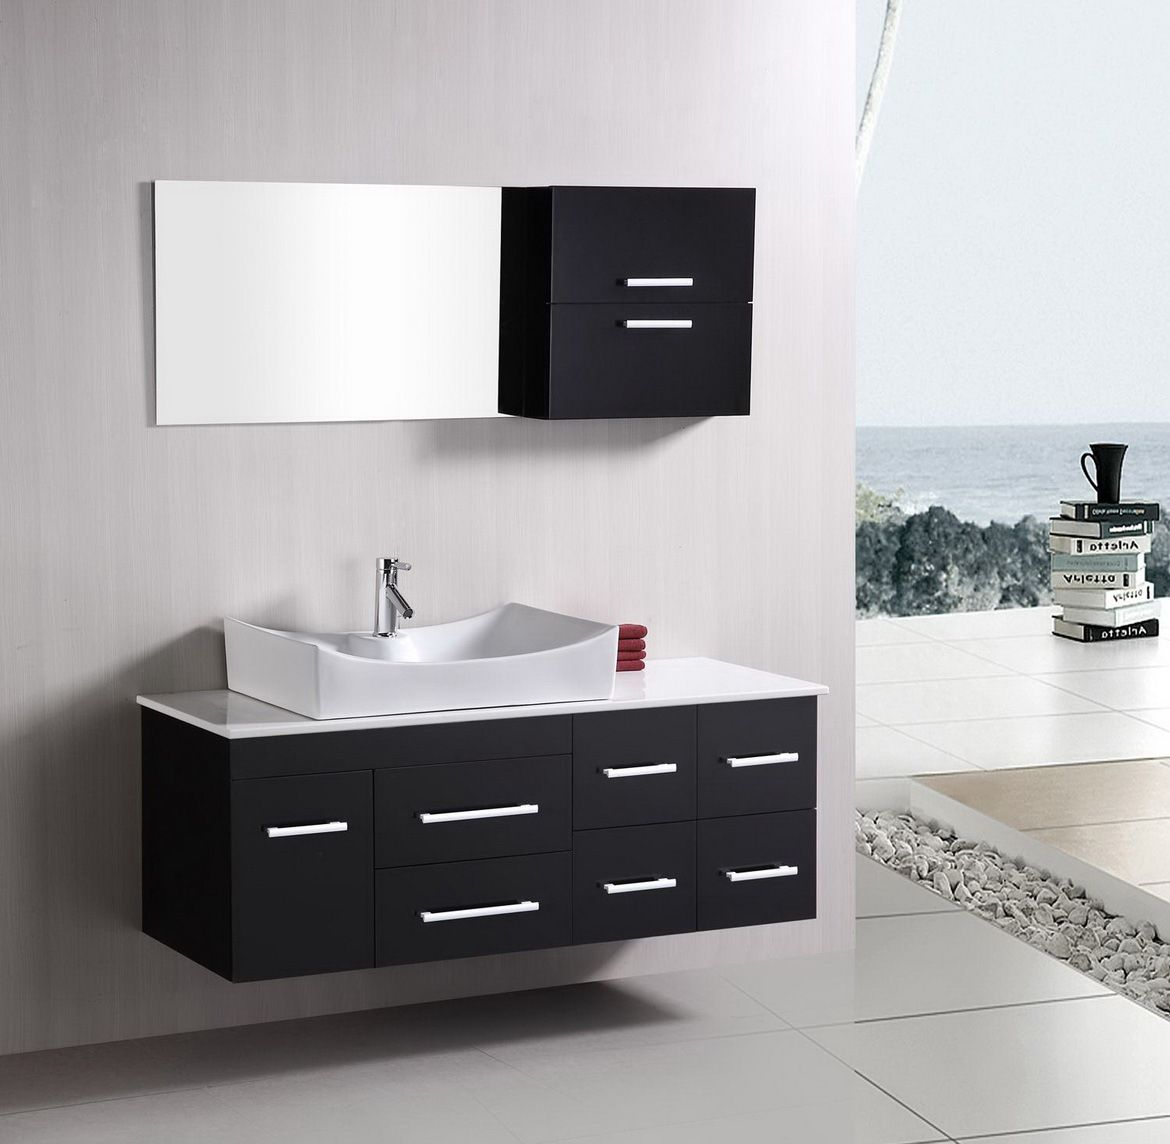 bathroom vanities  making bathrooms a place to relax  - bathroom vanities  making bathrooms a place to relax